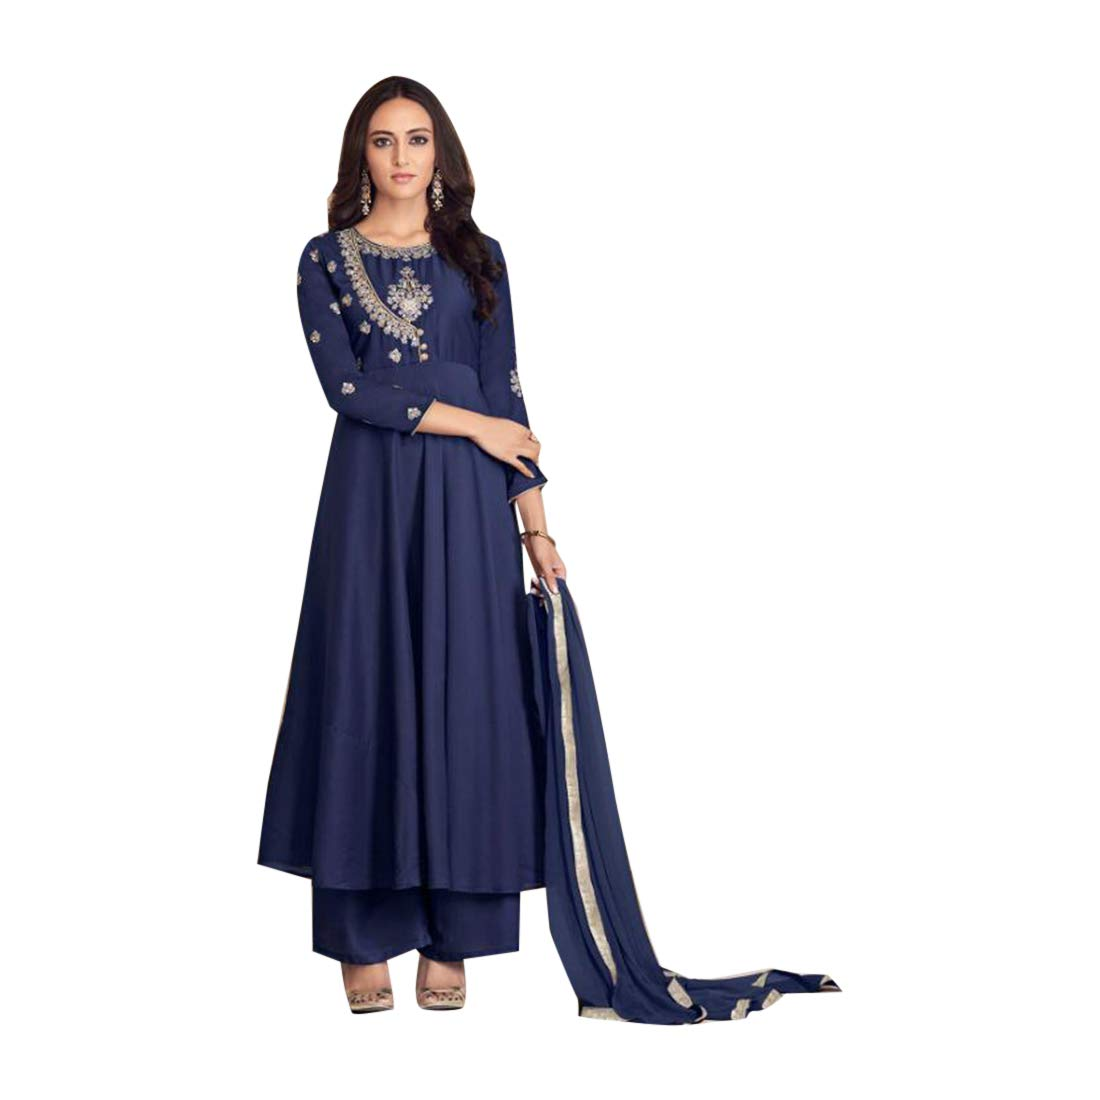 Navybluee Ethnic Eid special Designer Maslin Plazo style Salwar Kameez Suit Women Evening Party wear Bespoke 7895 3